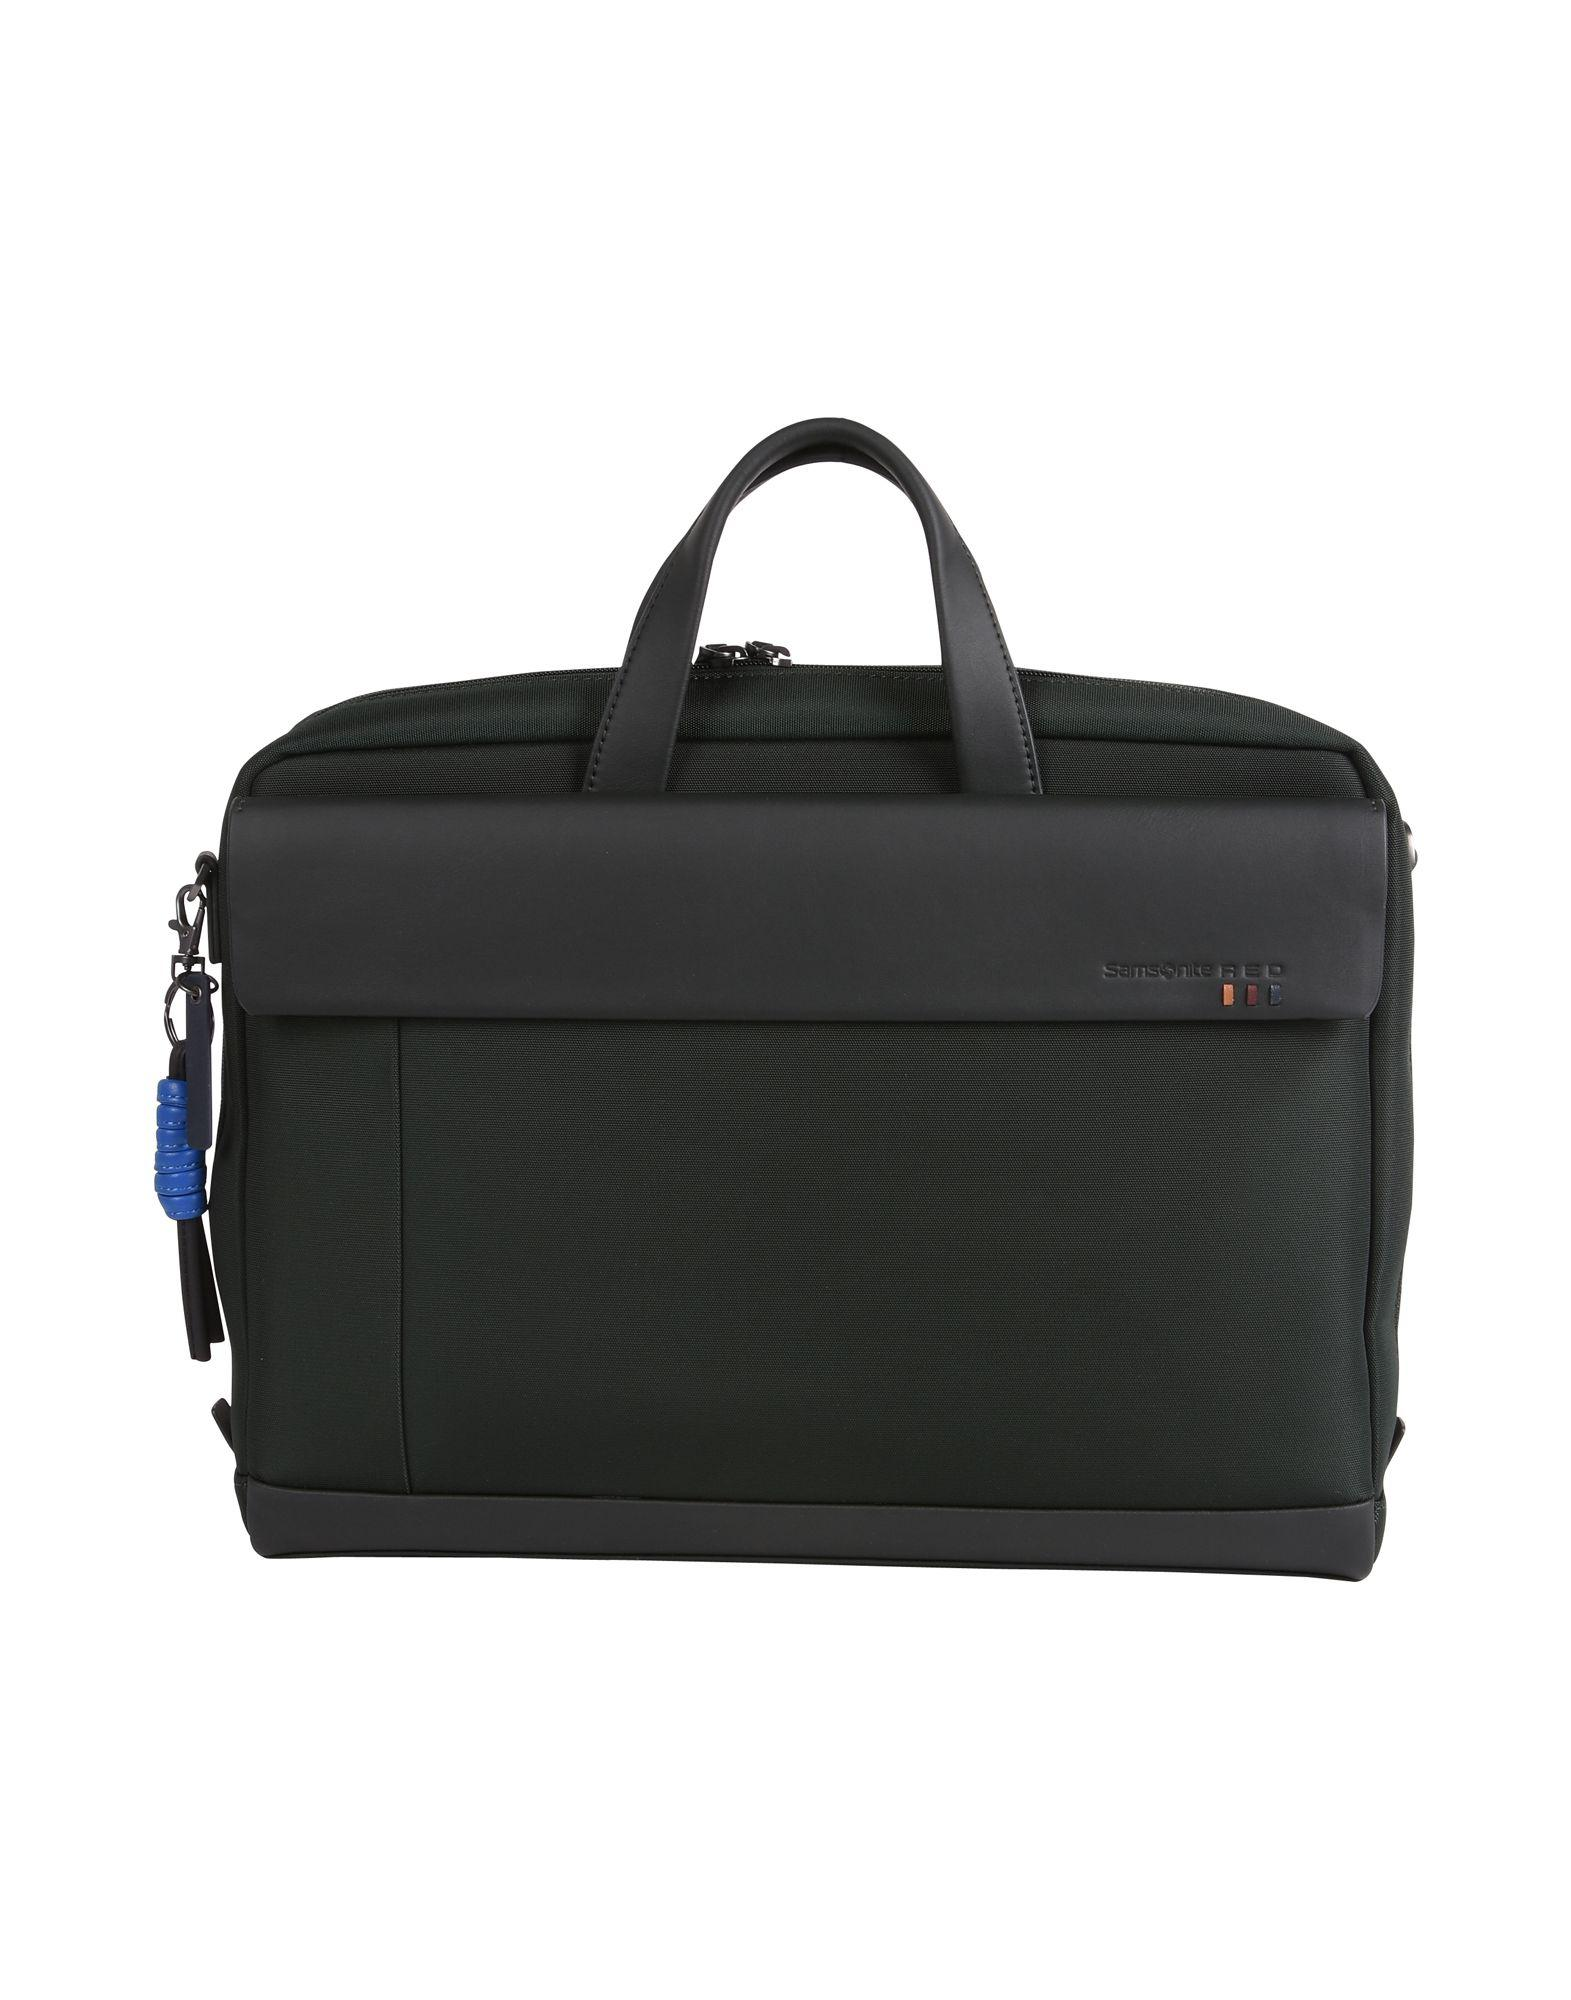 BAGS - Work Bags Samsonite